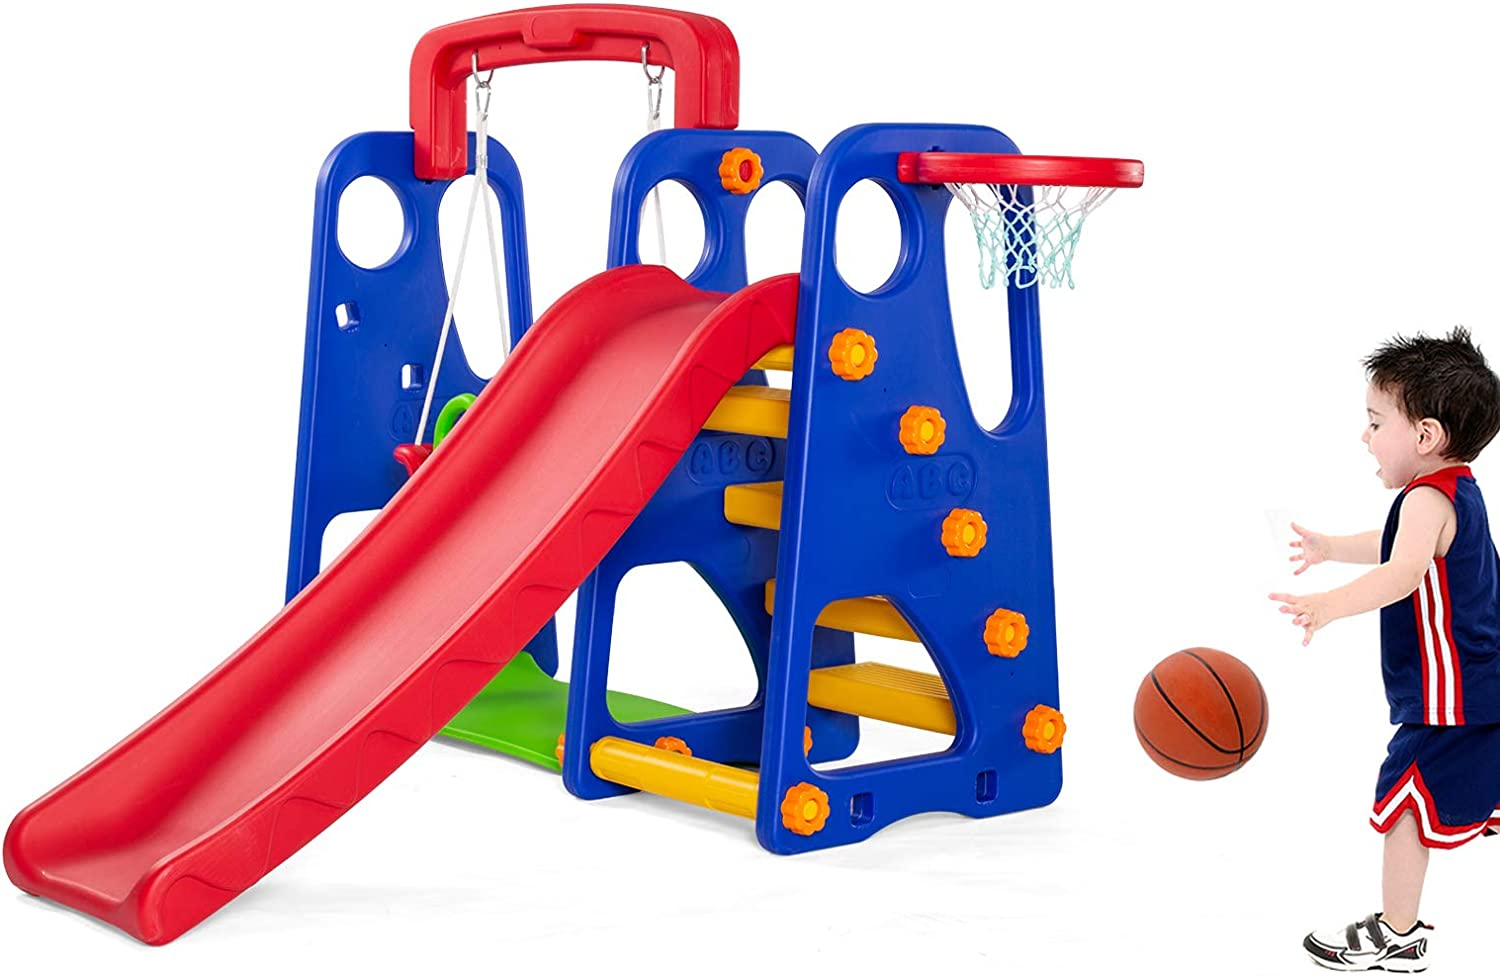 Sararoom 3 当店限定販売 in 1 Toddler 人気の定番 Slide and Climber Set Swing Kids